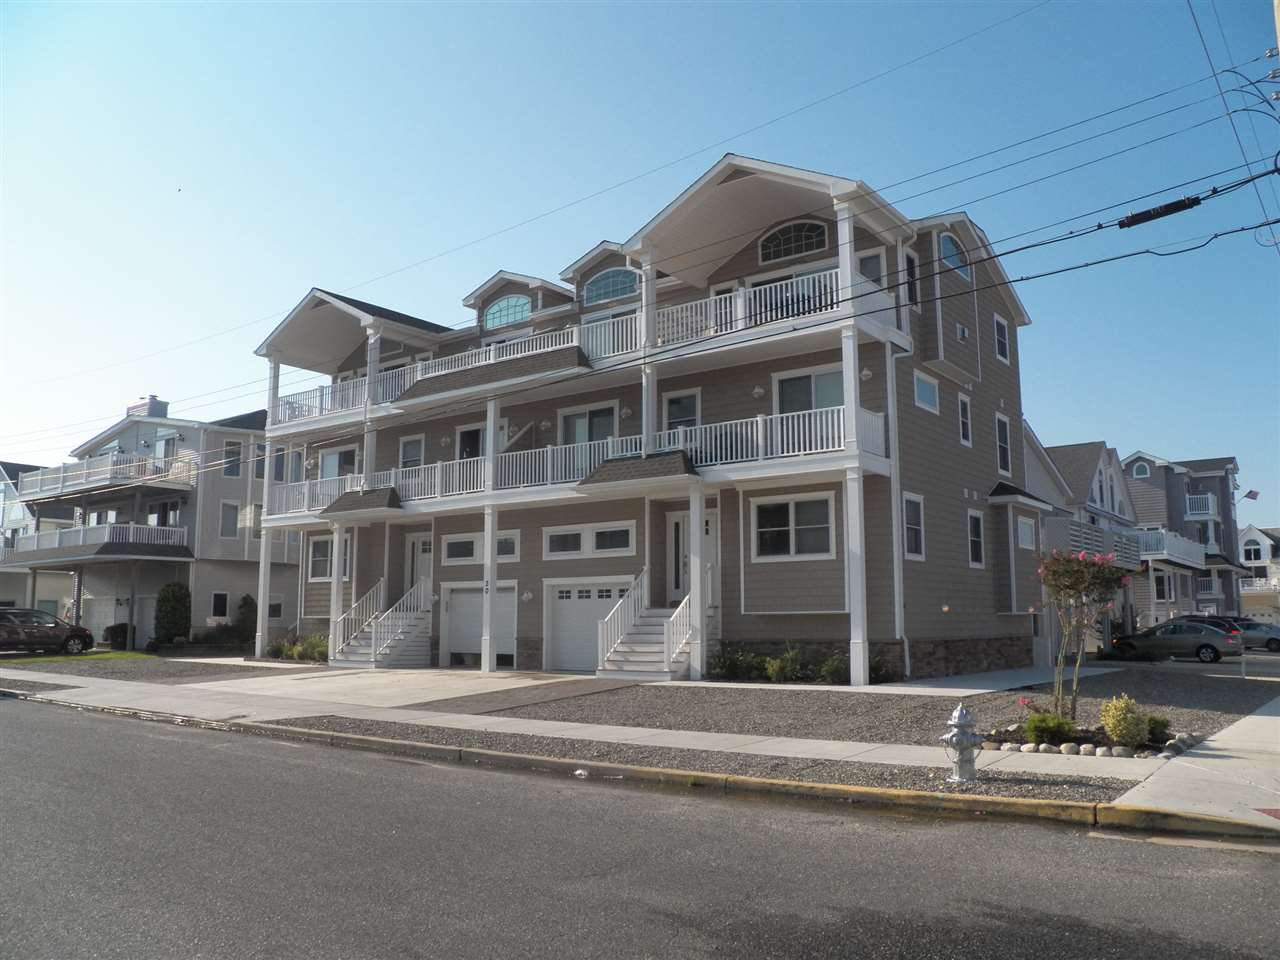 30 71st Street West Unit, Sea Isle City, NJ 08243